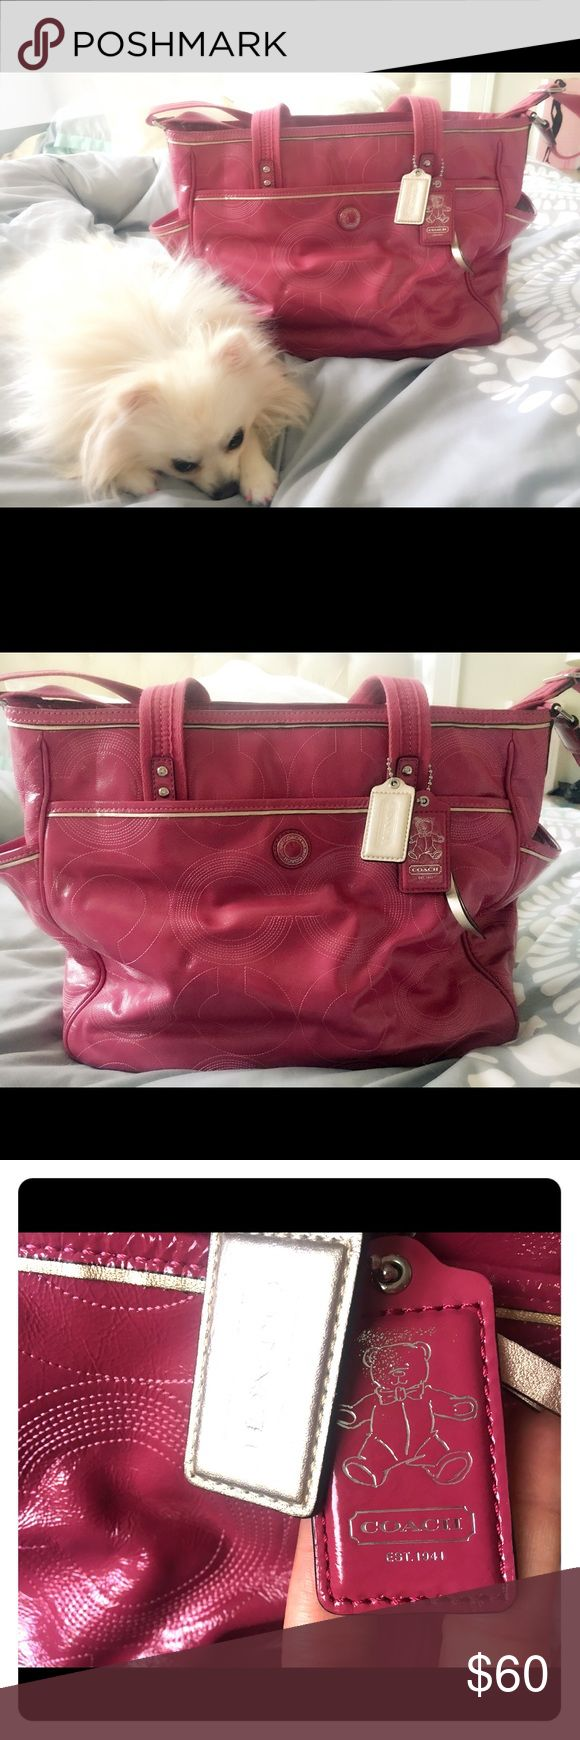 Gorgeous Patent leather PINK COACH diaper bag Cutest diaper bag ever.  I used it only a handful of times to carry paperwork and make up.  It's very clean and excellent condition. Smoke free home of course. Coach Bags Baby Bags